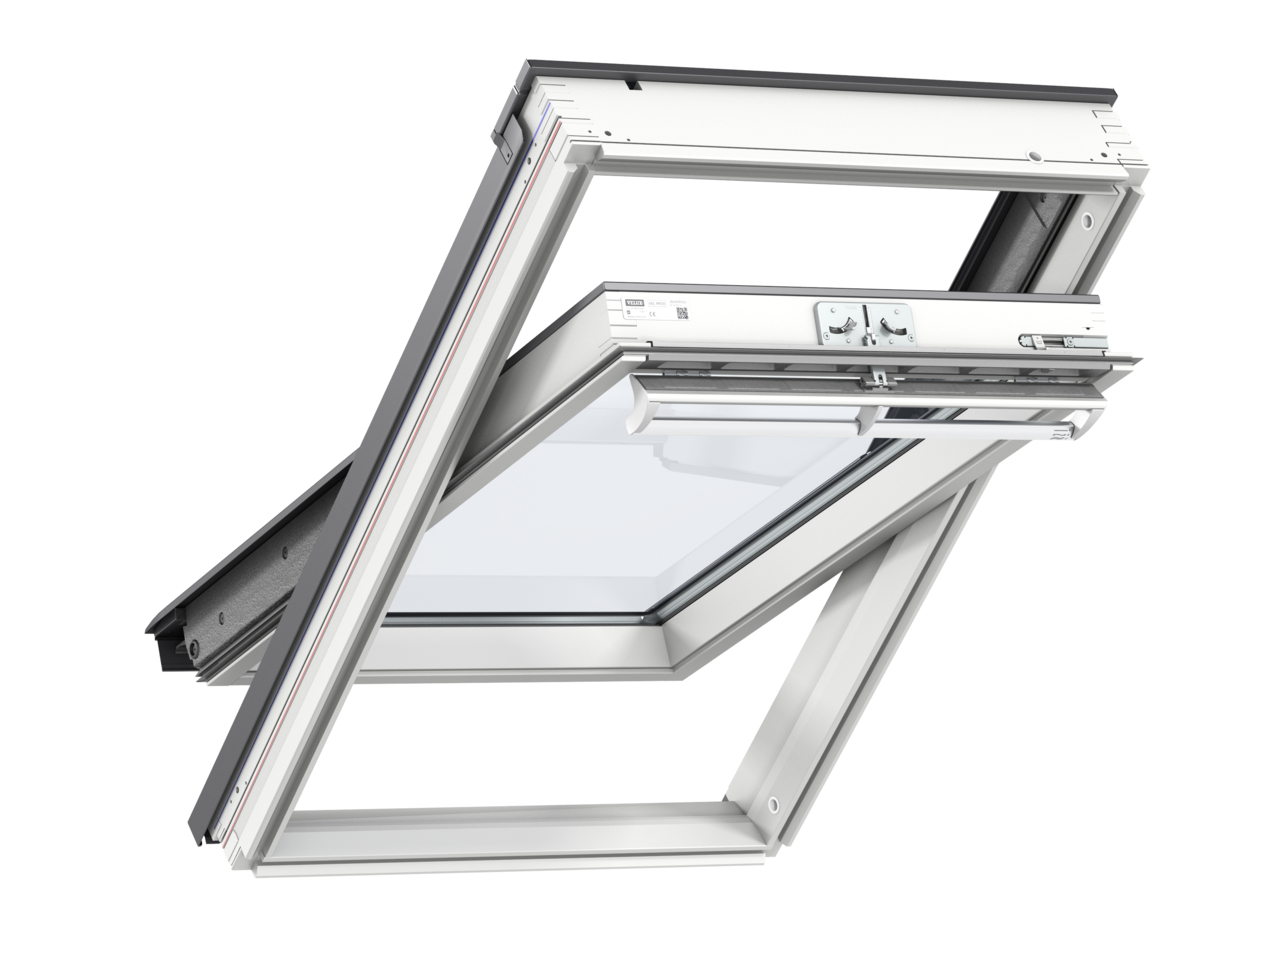 Velux GGL UK04 1340 x 980mm Centre Pivot 66 Pane Roof Window - White Painted